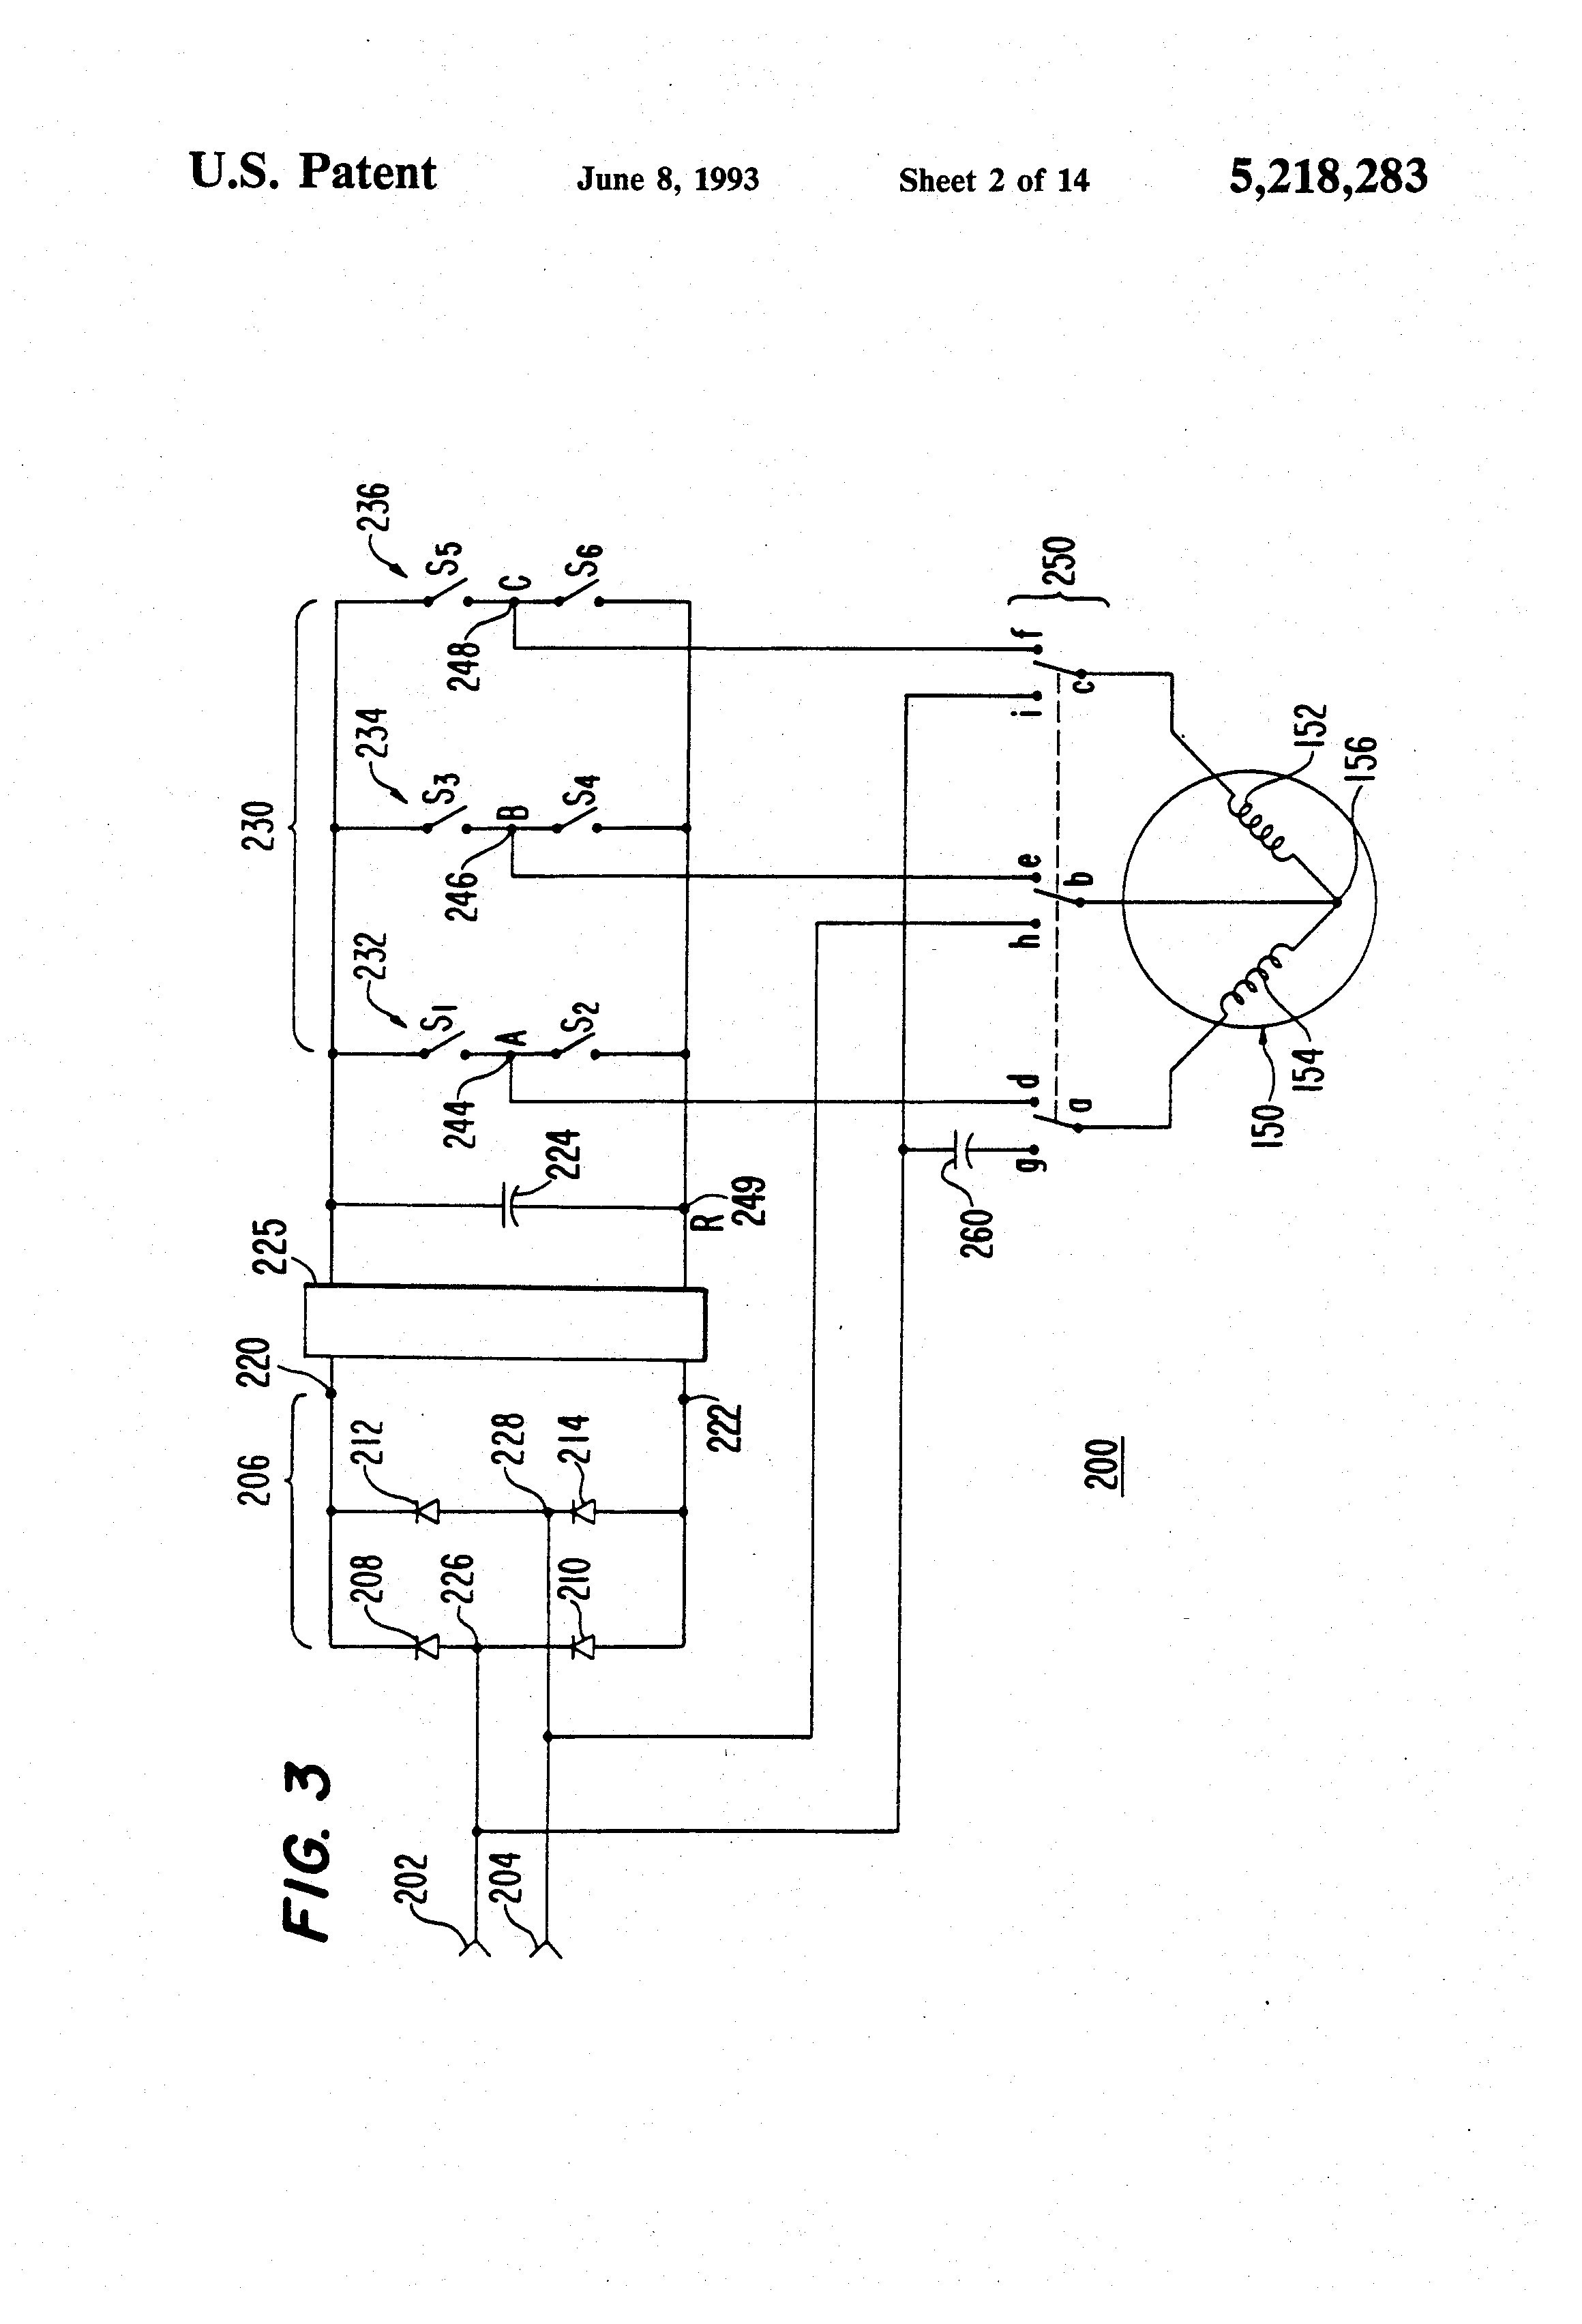 3 Phase Electrical Wiring Diagram 3 Phase 6 Lead Motor Wiring Diagram Lovely Fine 9 Lead Motor Wiring Of 3 Phase Electrical Wiring Diagram